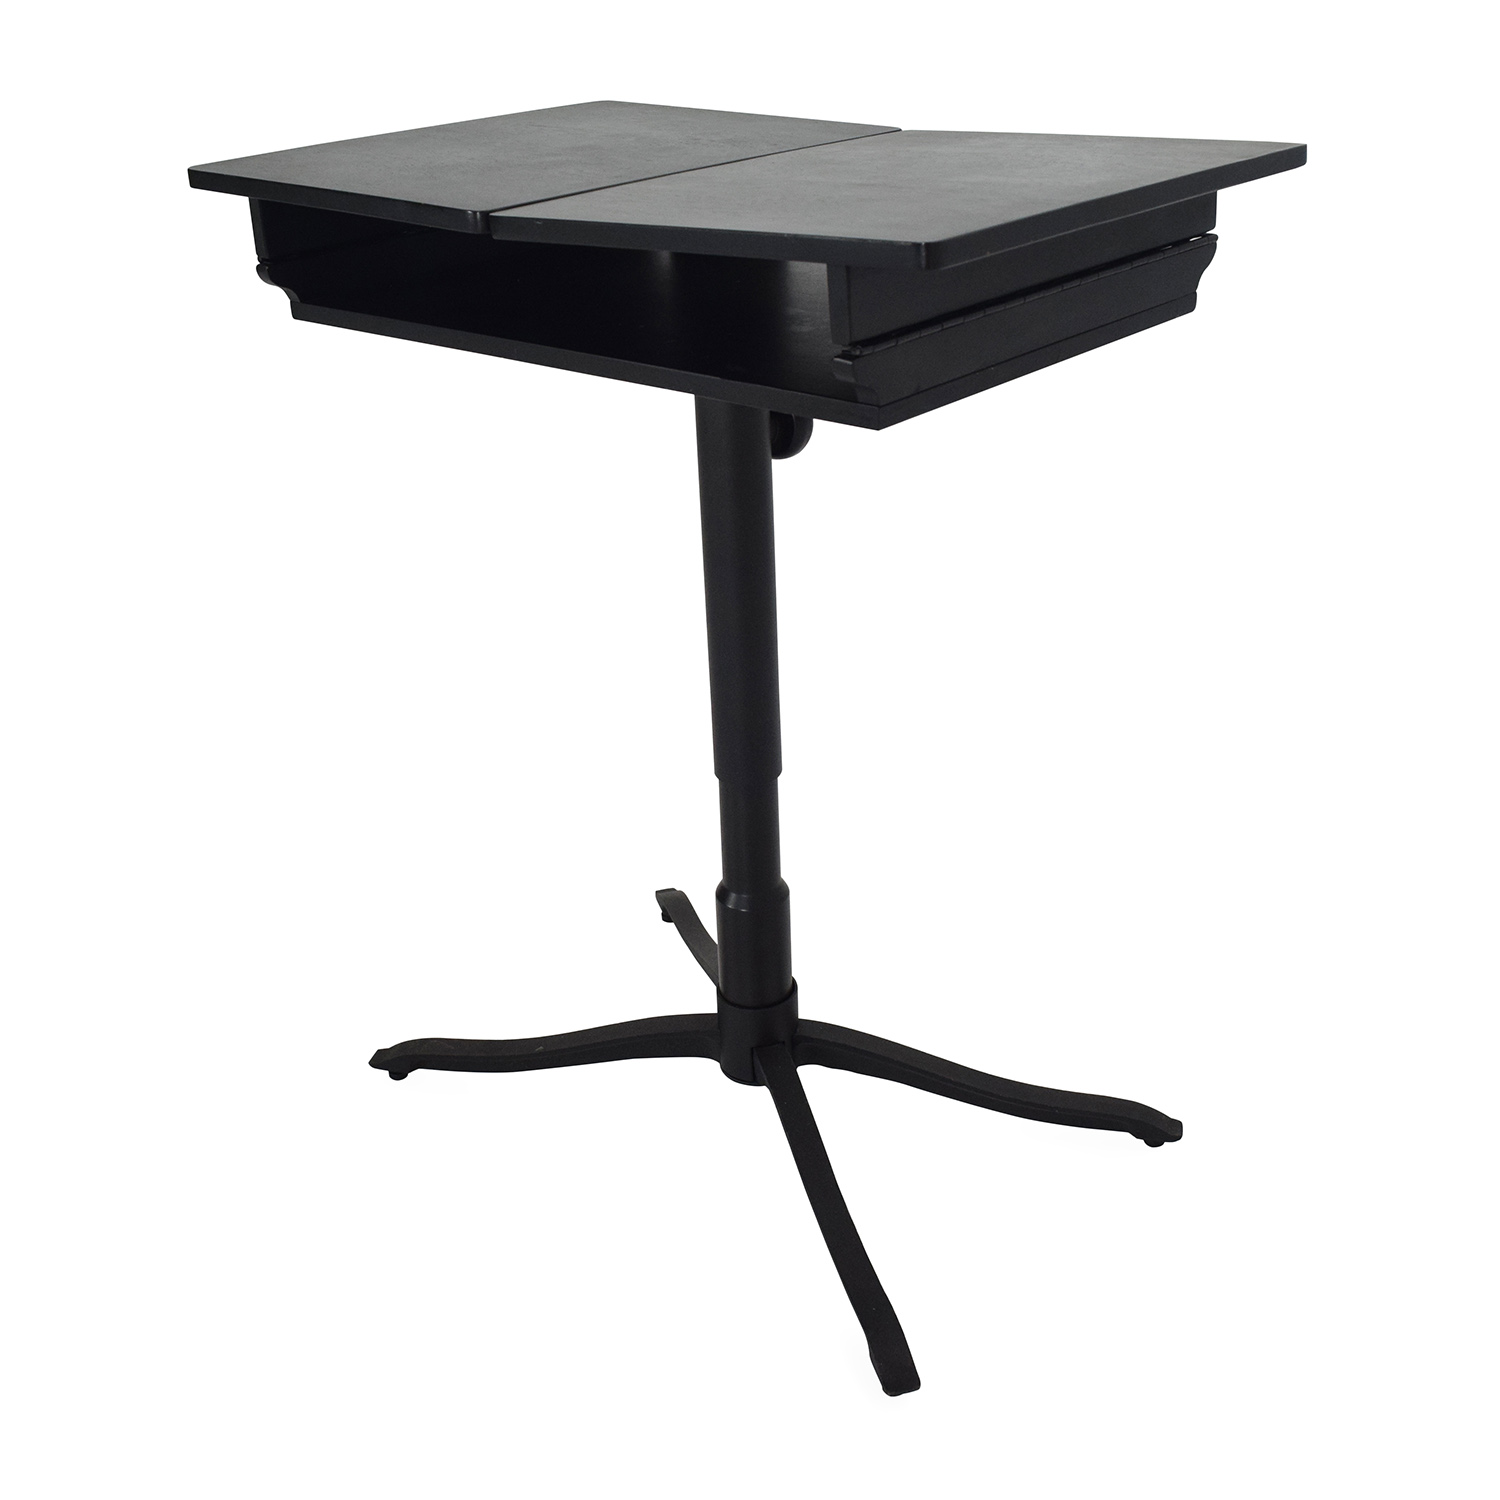 86 Off Ikea Foldable Laptop Stand Tables